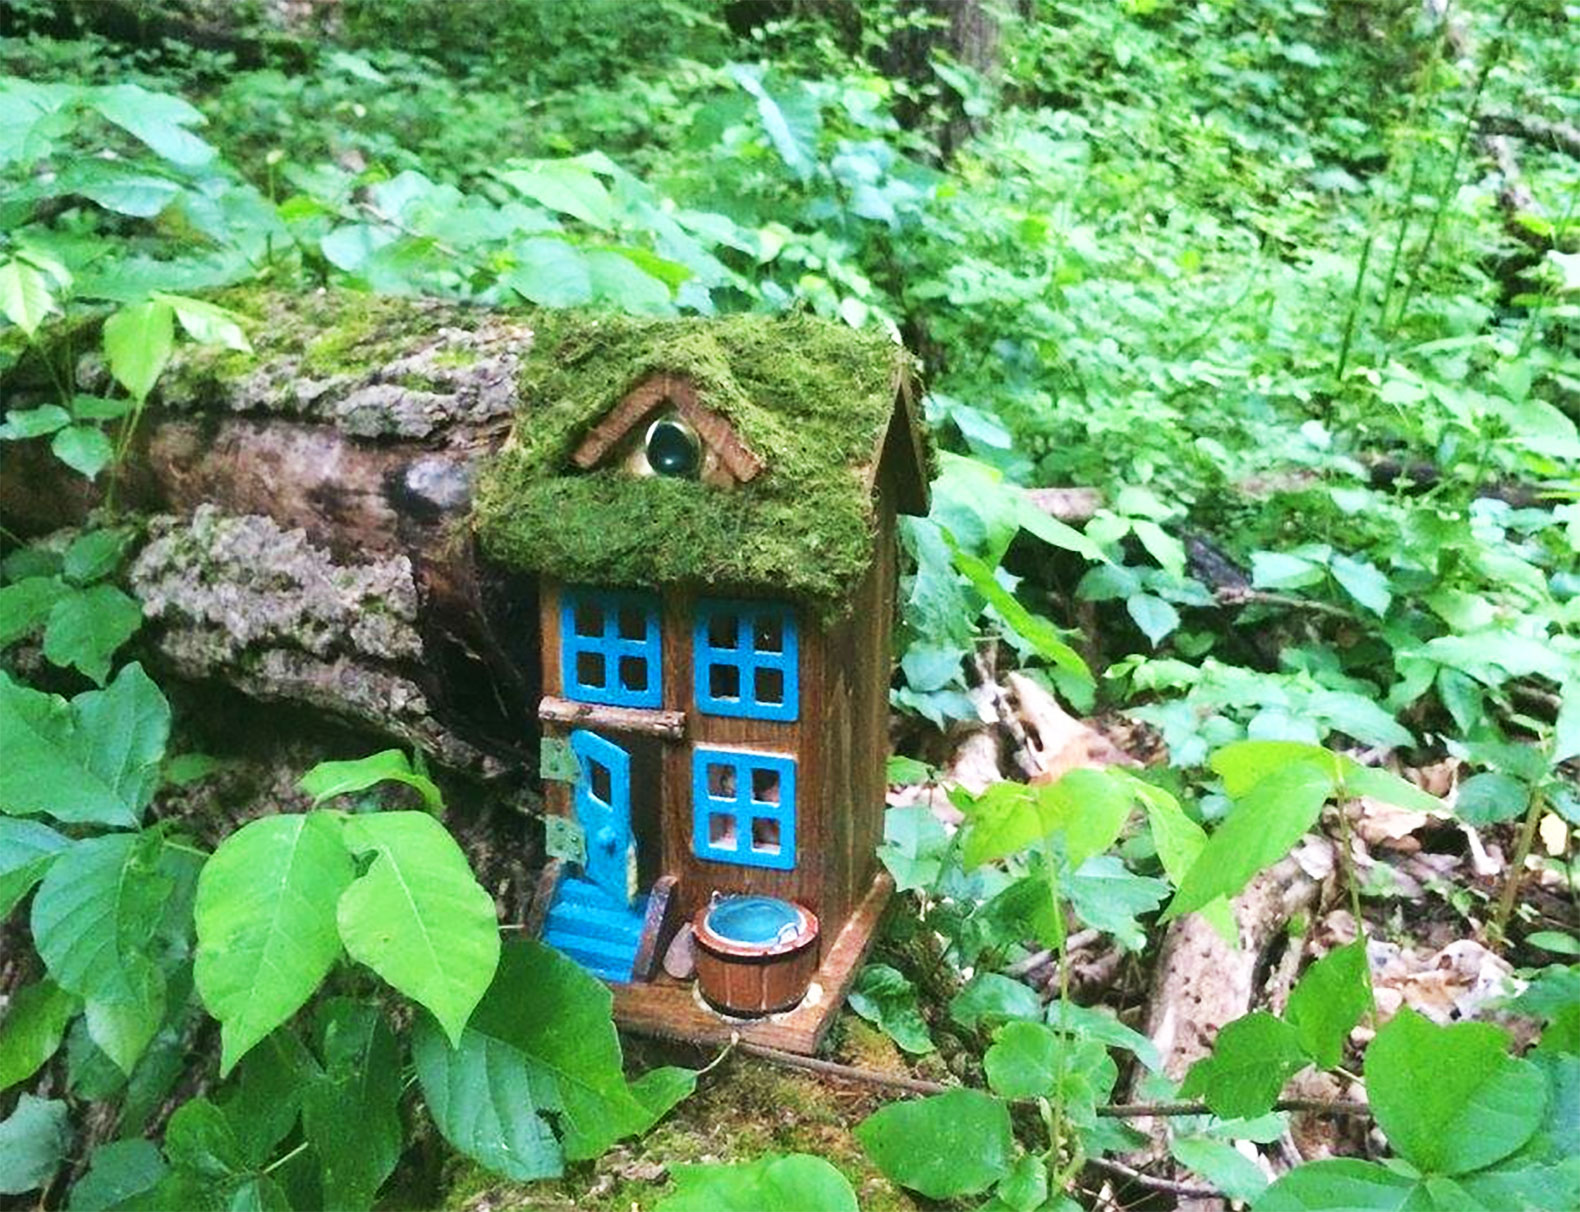 Tiny House Nj >> New Jersey hiking trail lined with mysterious itsy bitsy fairy houses   Inhabitat - Green Design ...